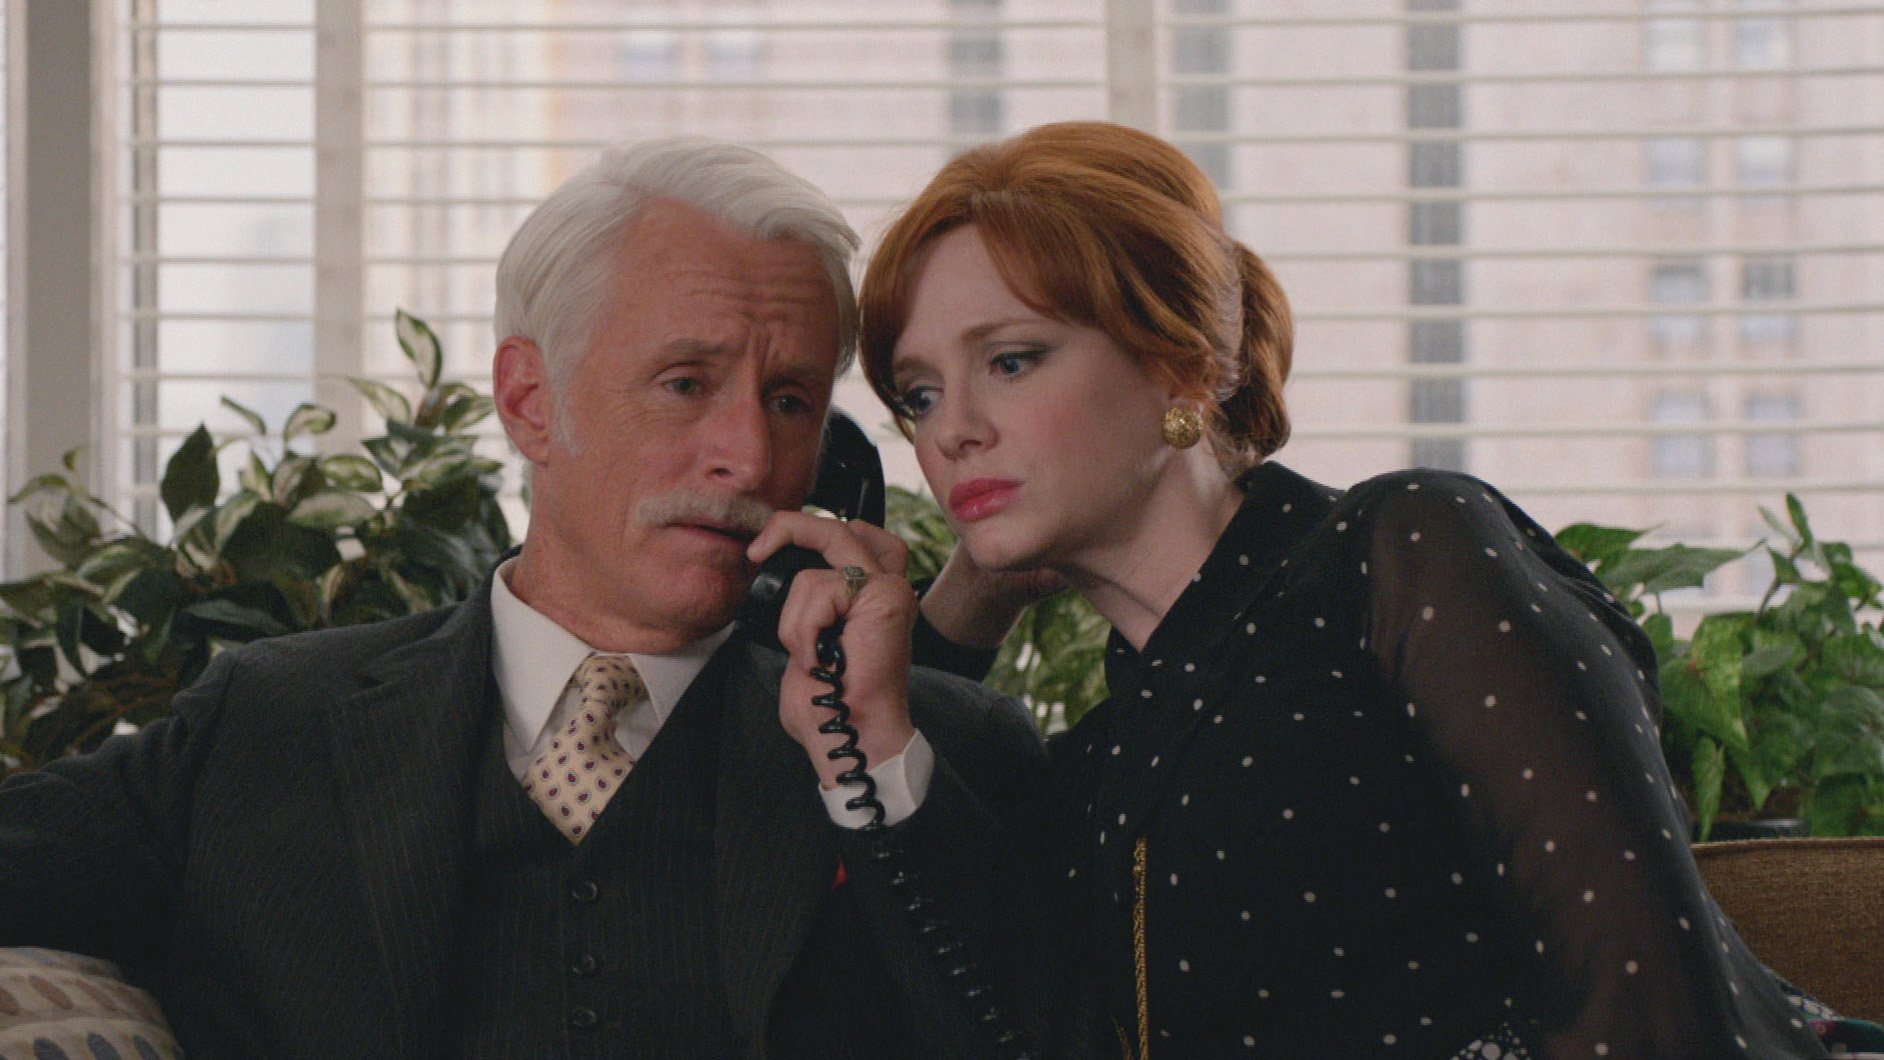 John Slattery as Roger Sterling and Christina Hendricks as Joan Harris - Mad Men _ Season 7B, Episode 11 - Photo Credit: Courtesy of AMC